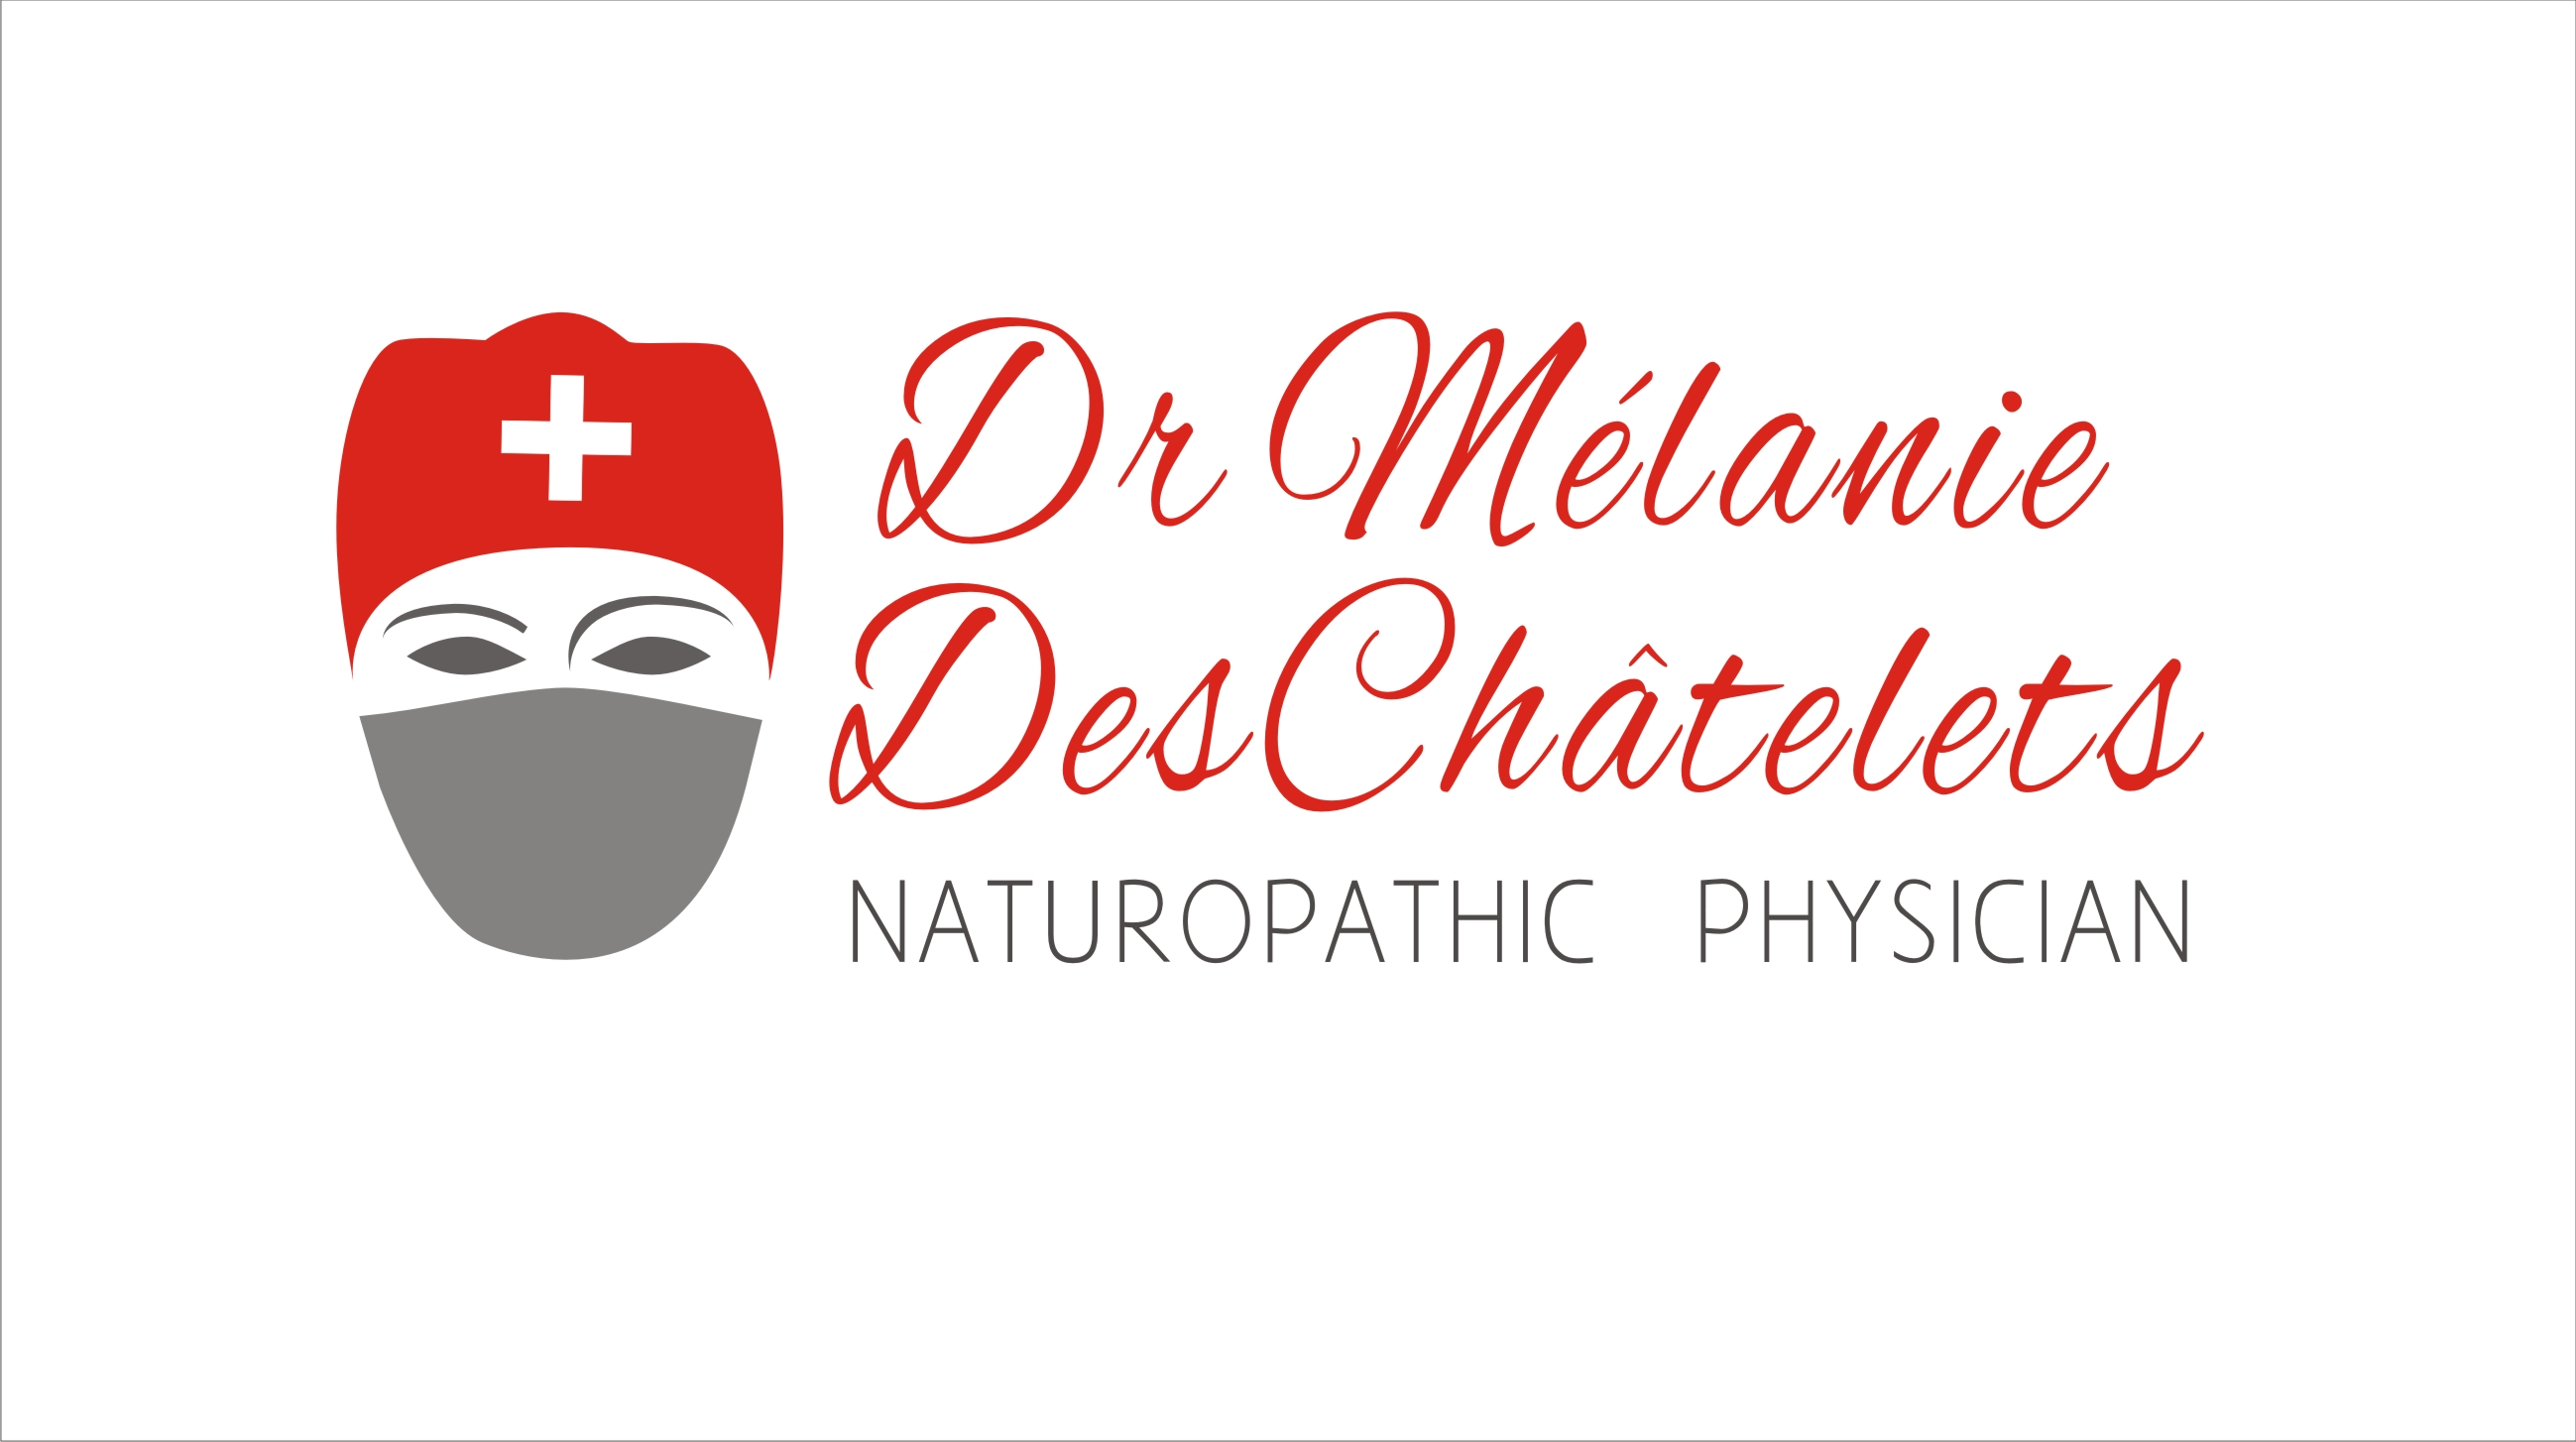 Logo Design by Sandip Kumar - Entry No. 208 in the Logo Design Contest Artistic Logo Design for Dr Mélanie DesChâtelets.